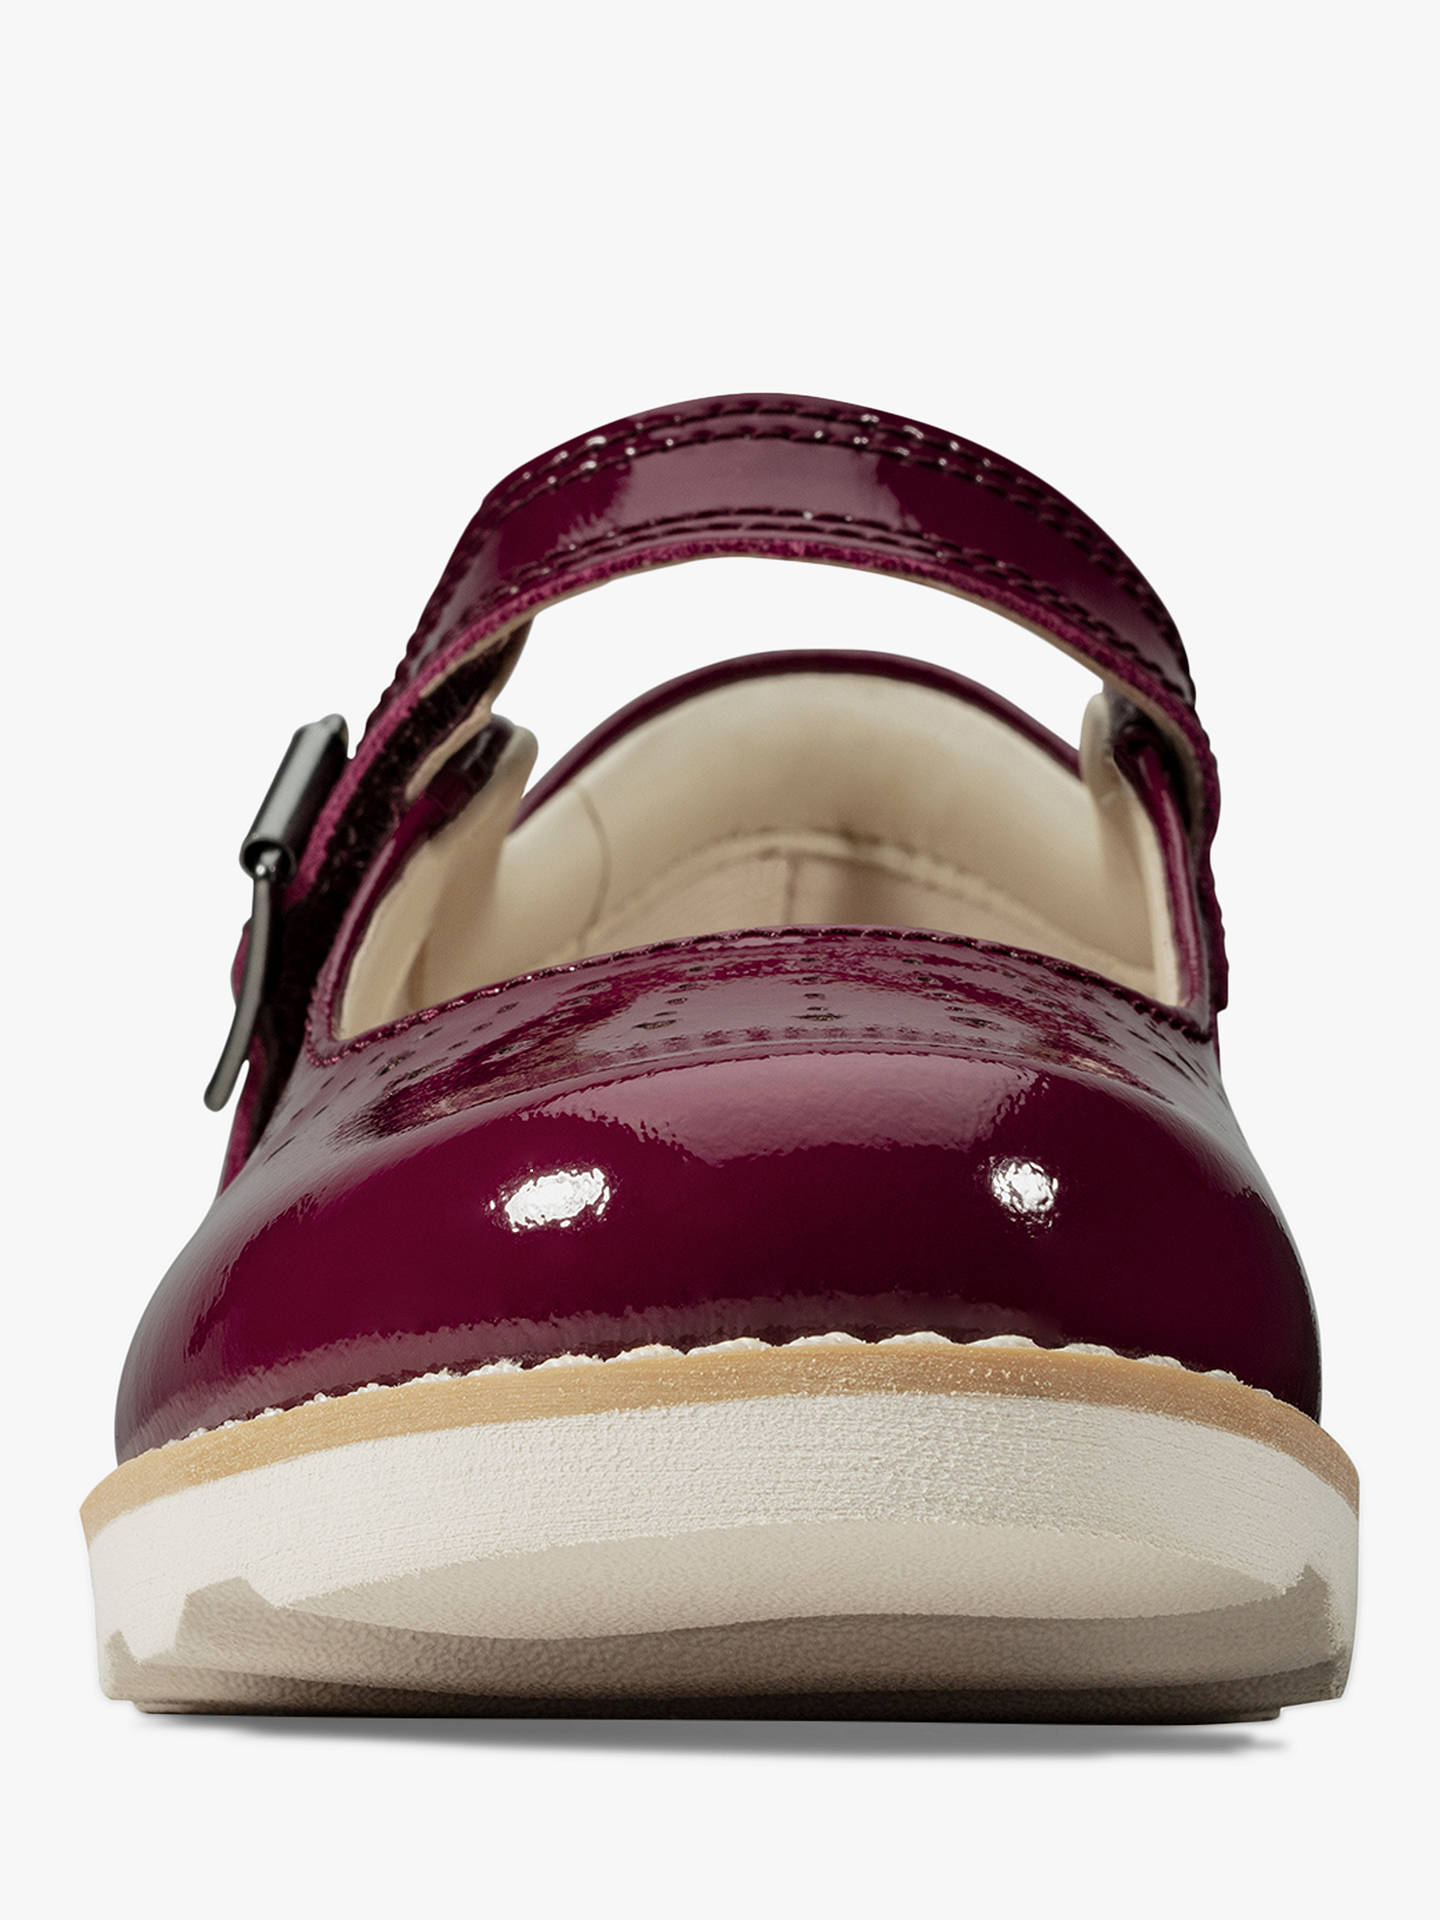 Clarks Children's Crown Jump Patent Buckle Shoes, Plum